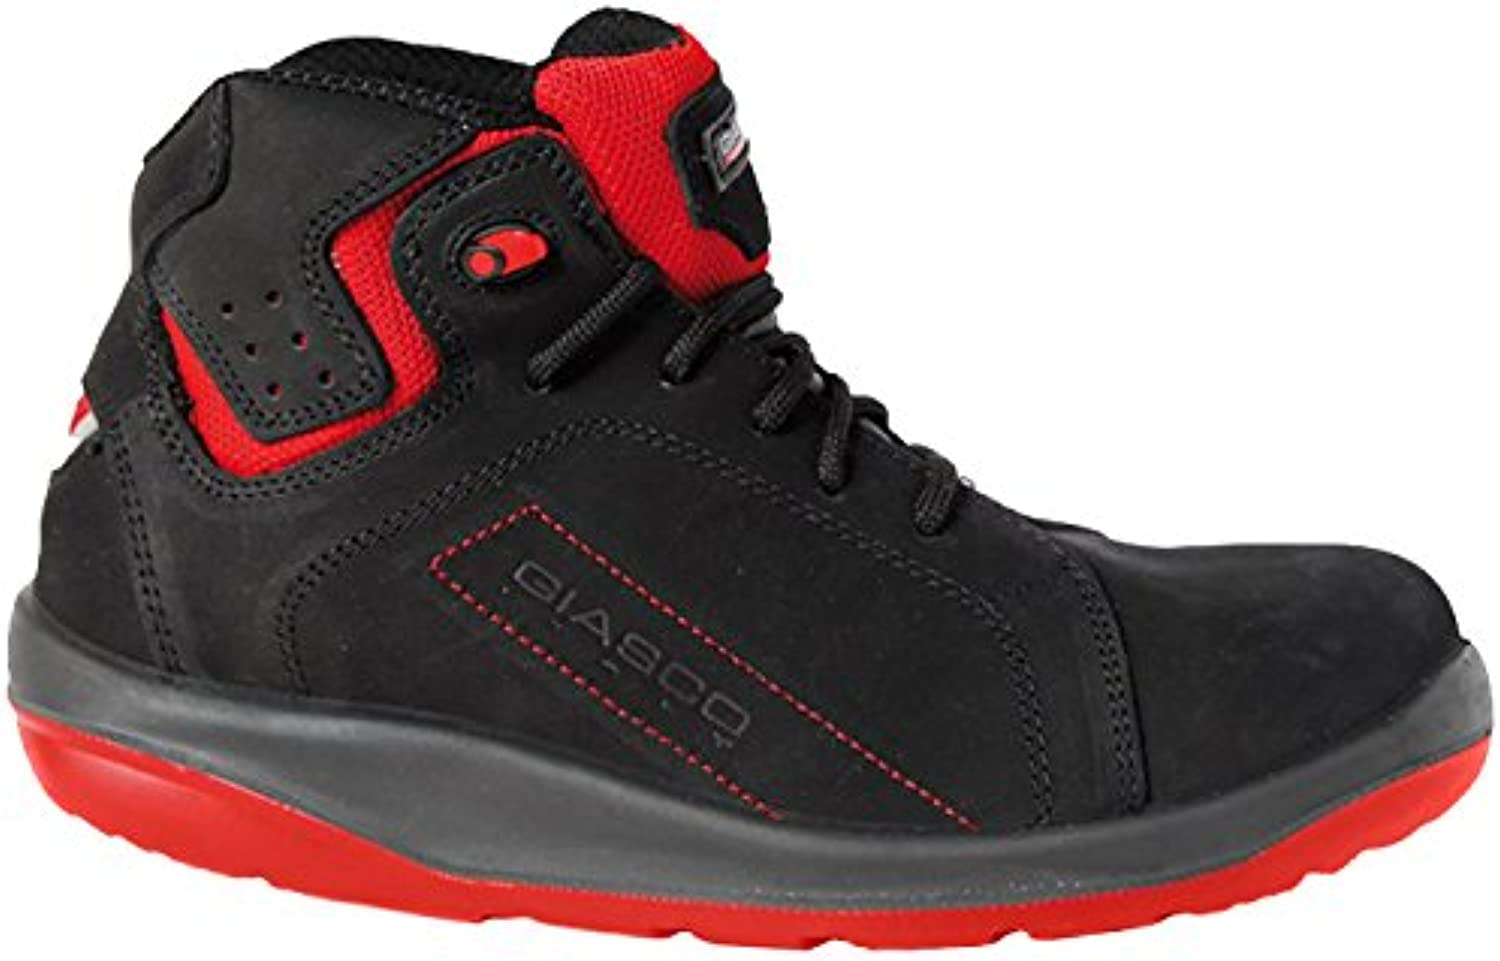 Giasco 73N37C41 Size 41 S3  Gym  Lace Up Boots - Black Red